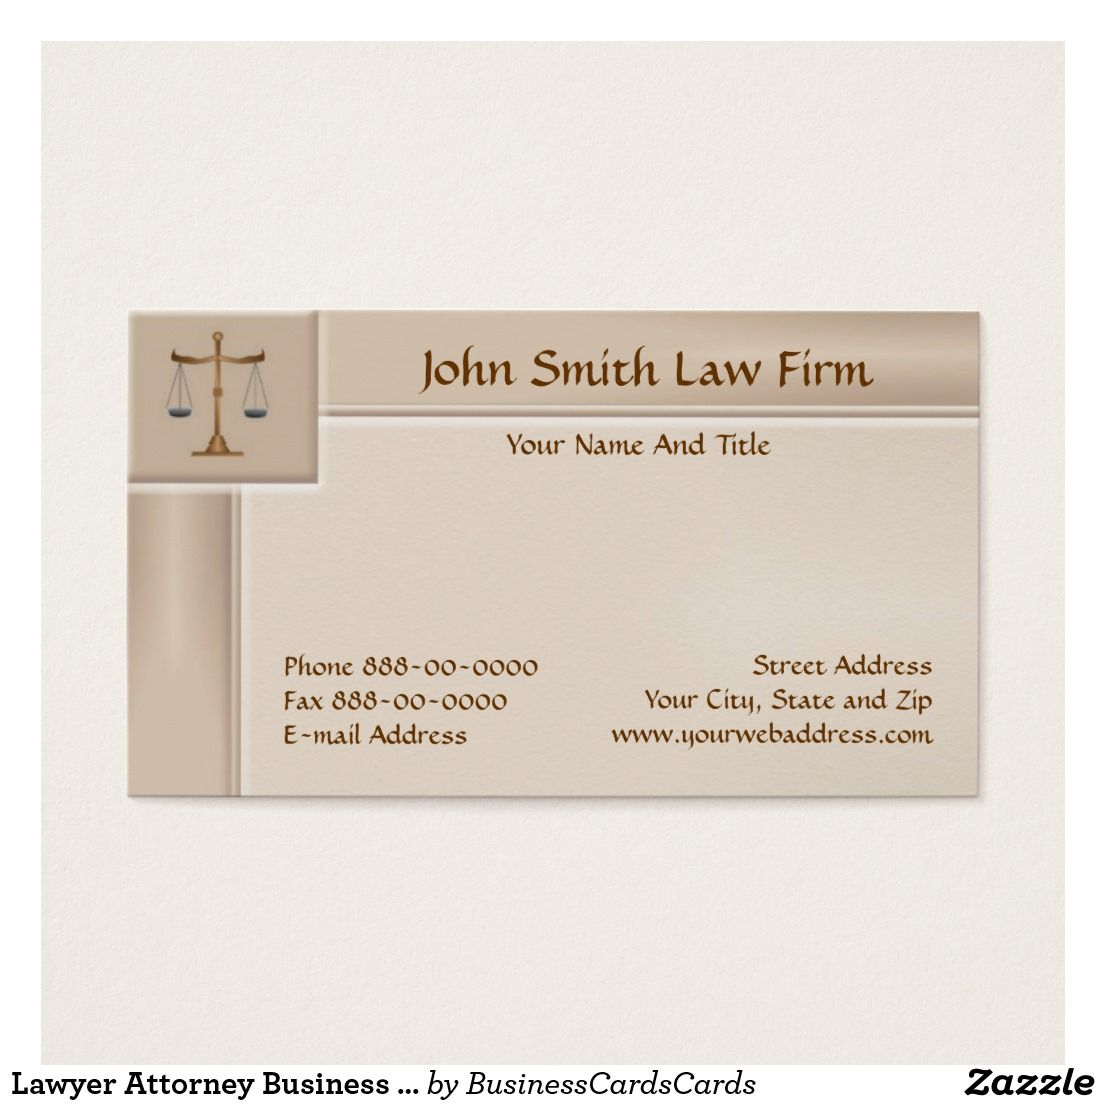 Lawyer attorney business card pinterest lawyer attorney business card legal custom check out more business card designs at httpzazzlebusinesscreations or at httpzazzle reheart Images